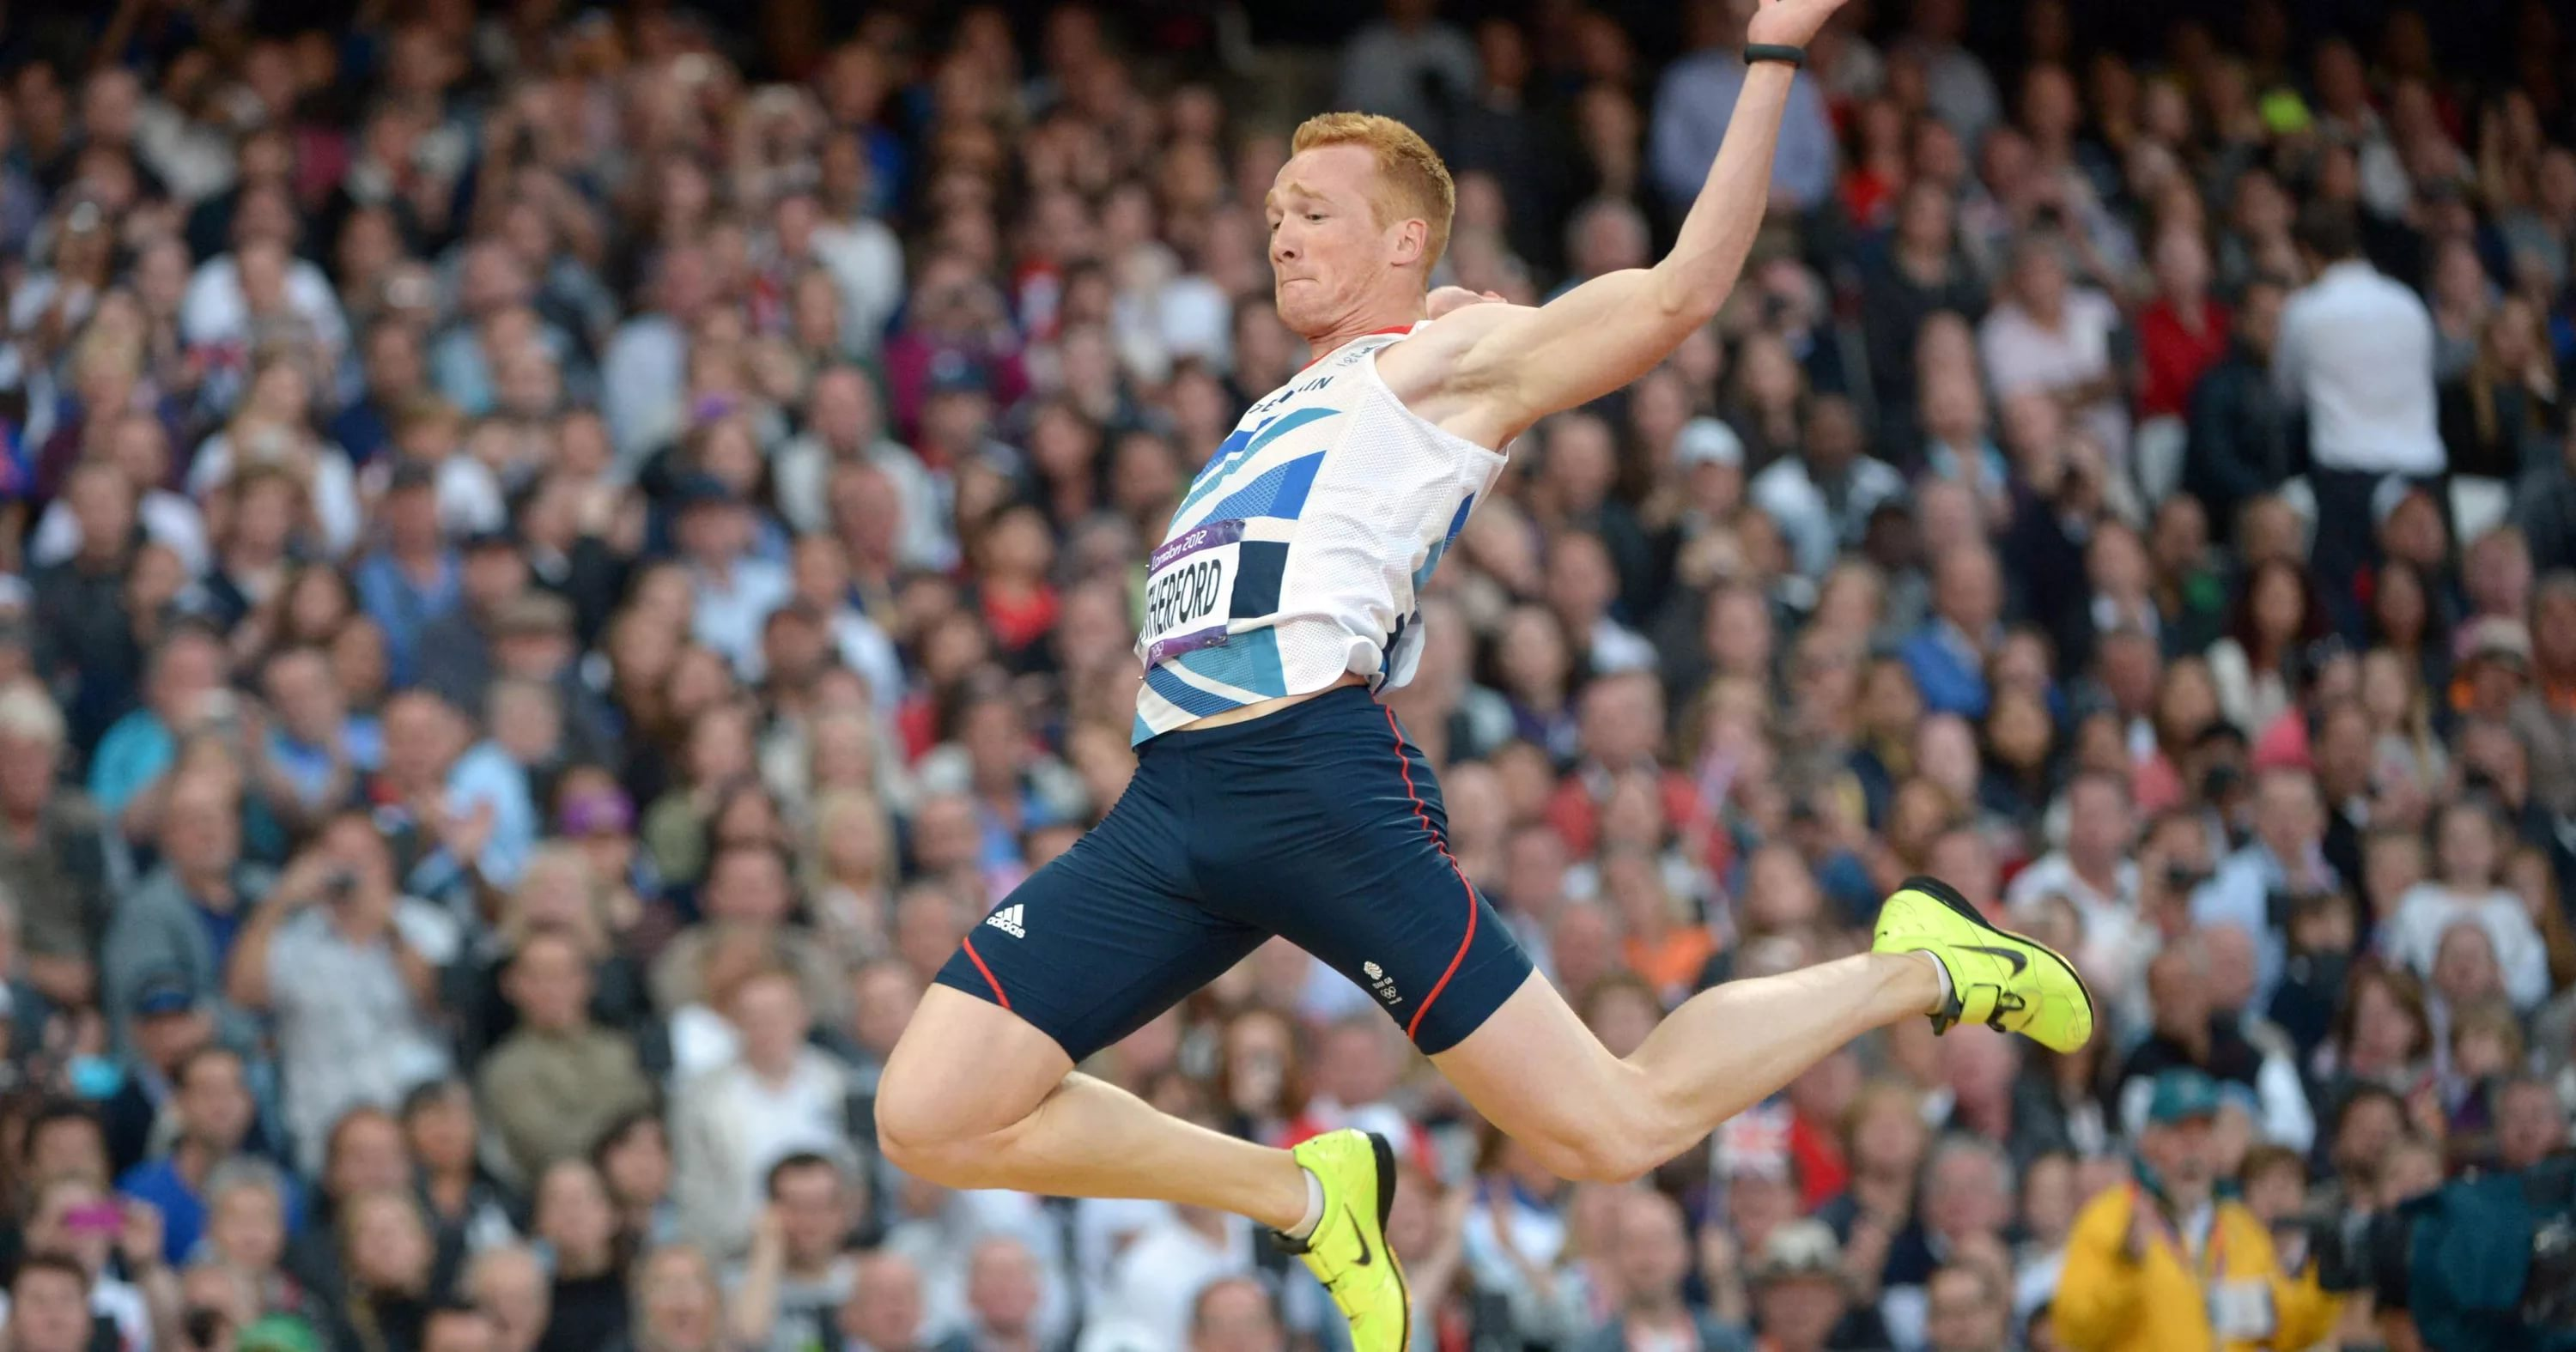 3000x1575 - Greg Rutherford Wallpapers 27